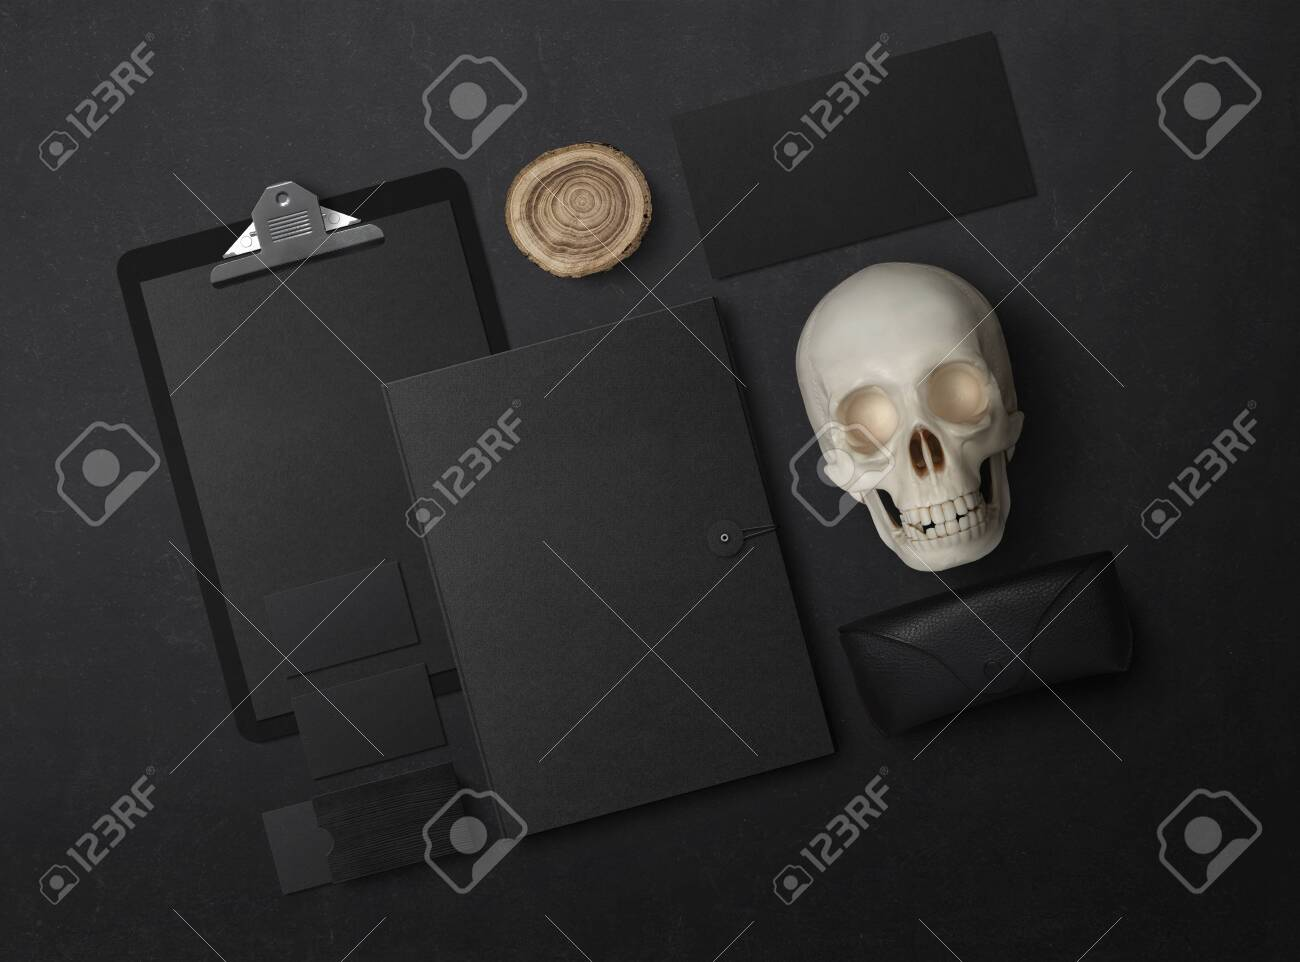 Mock-up. Template for branding identity. Blank objects for placing your design. Sheets of paper, business cards and envelope. Skull 3d illustration - 149685003